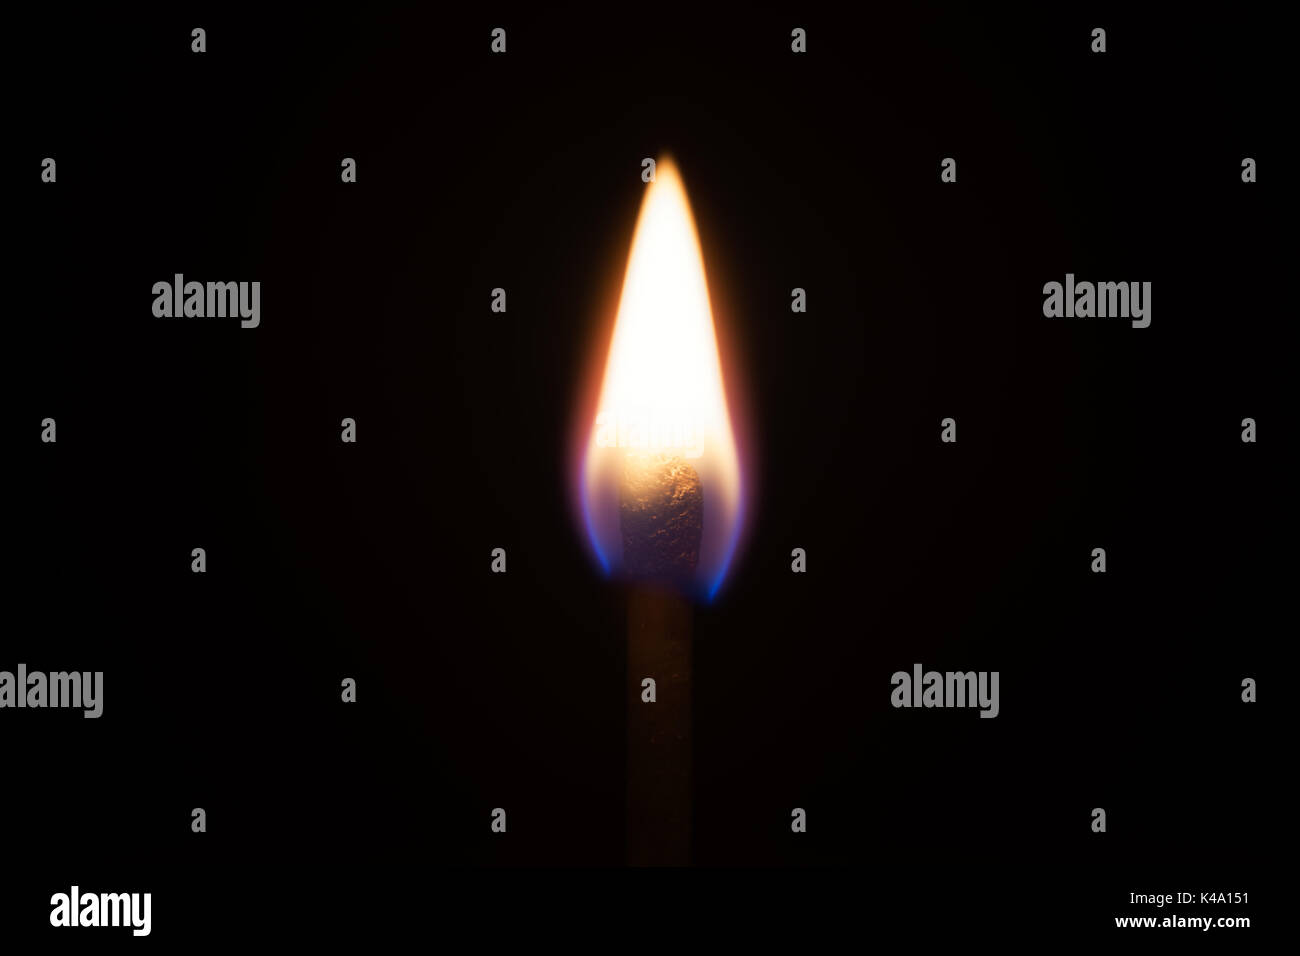 Closeup of a fire on black background - Stock Image